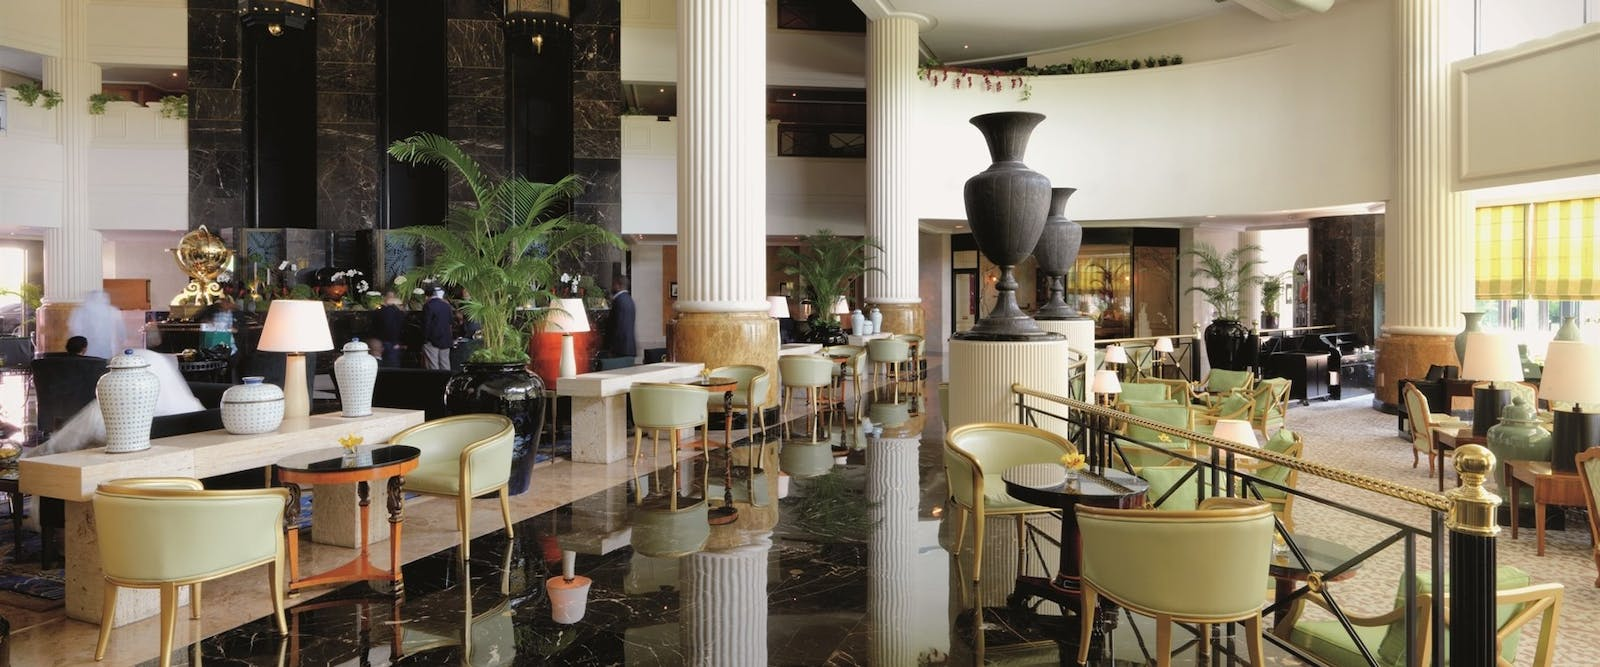 Lobby Lounge at The Ritz Carlton Bahrain Hotel Villas and Spa